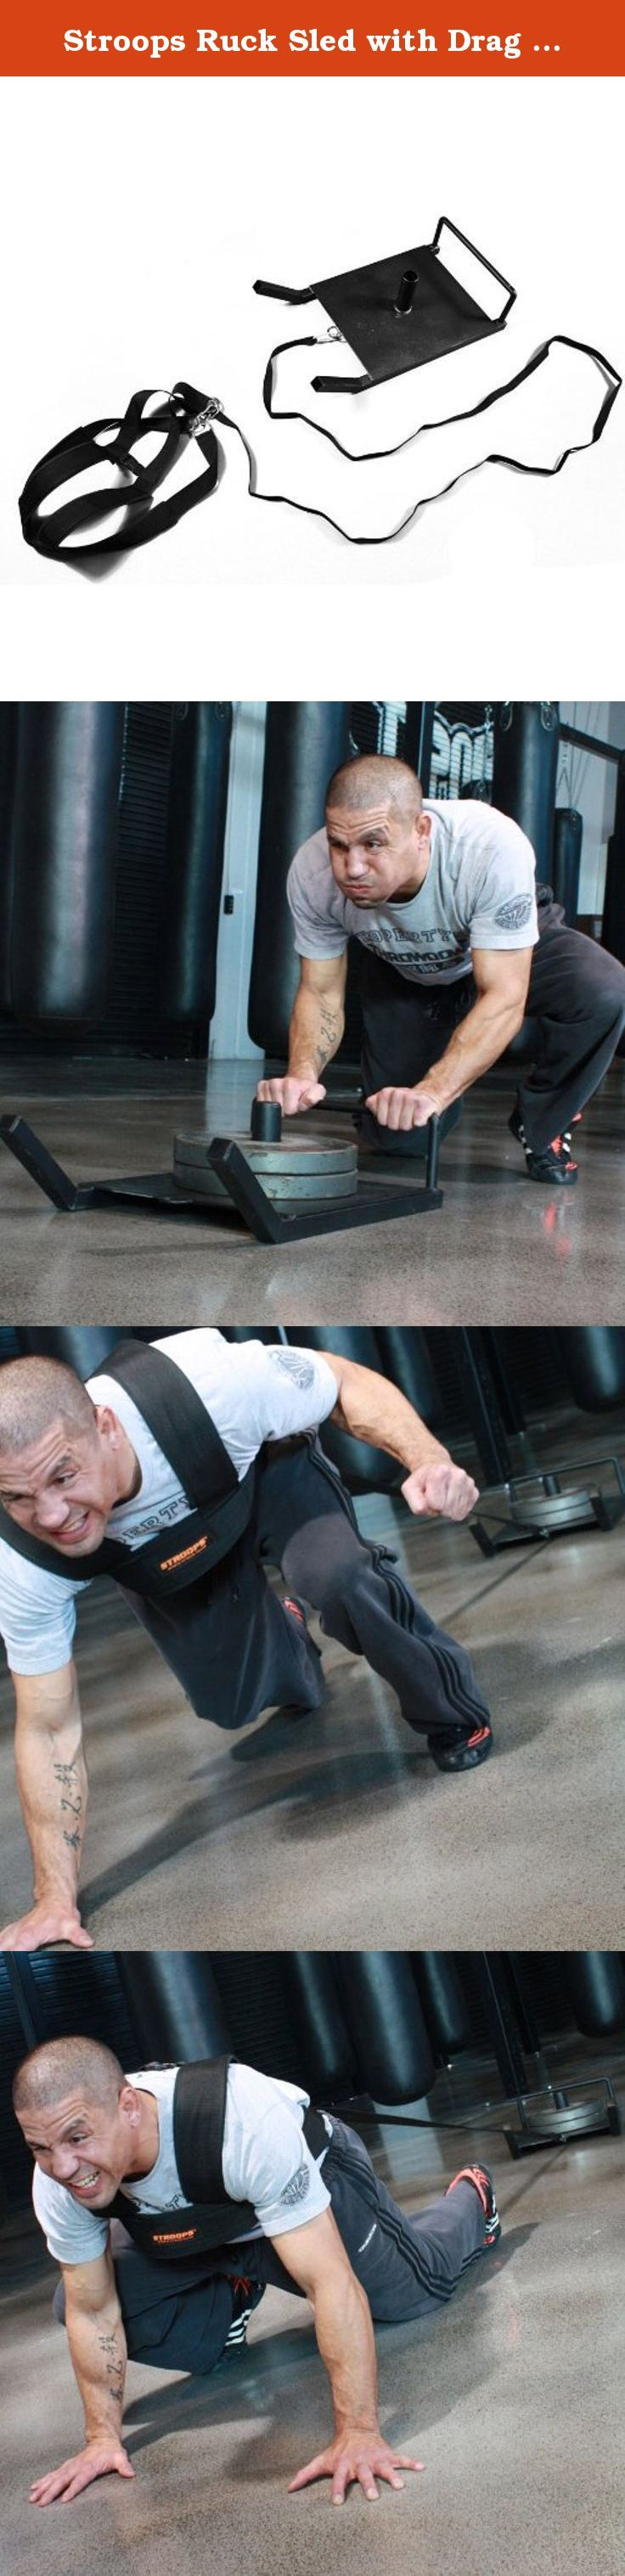 Stroops Ruck Sled with Drag Strap and Basic Shoulder Harness. The ruck is a term used in rugby when athletes battle for position over a ball that is extremely close to the ground. Like our sheet sled, strops? This fully welded, powder-coated steel ruck sled is used to develop the lower-body muscles used for explosiveness and acceleration. However, the strops ruck sled features a welded steel bar and traditional rails that provide the options of either pushing or pulling the sled. This…